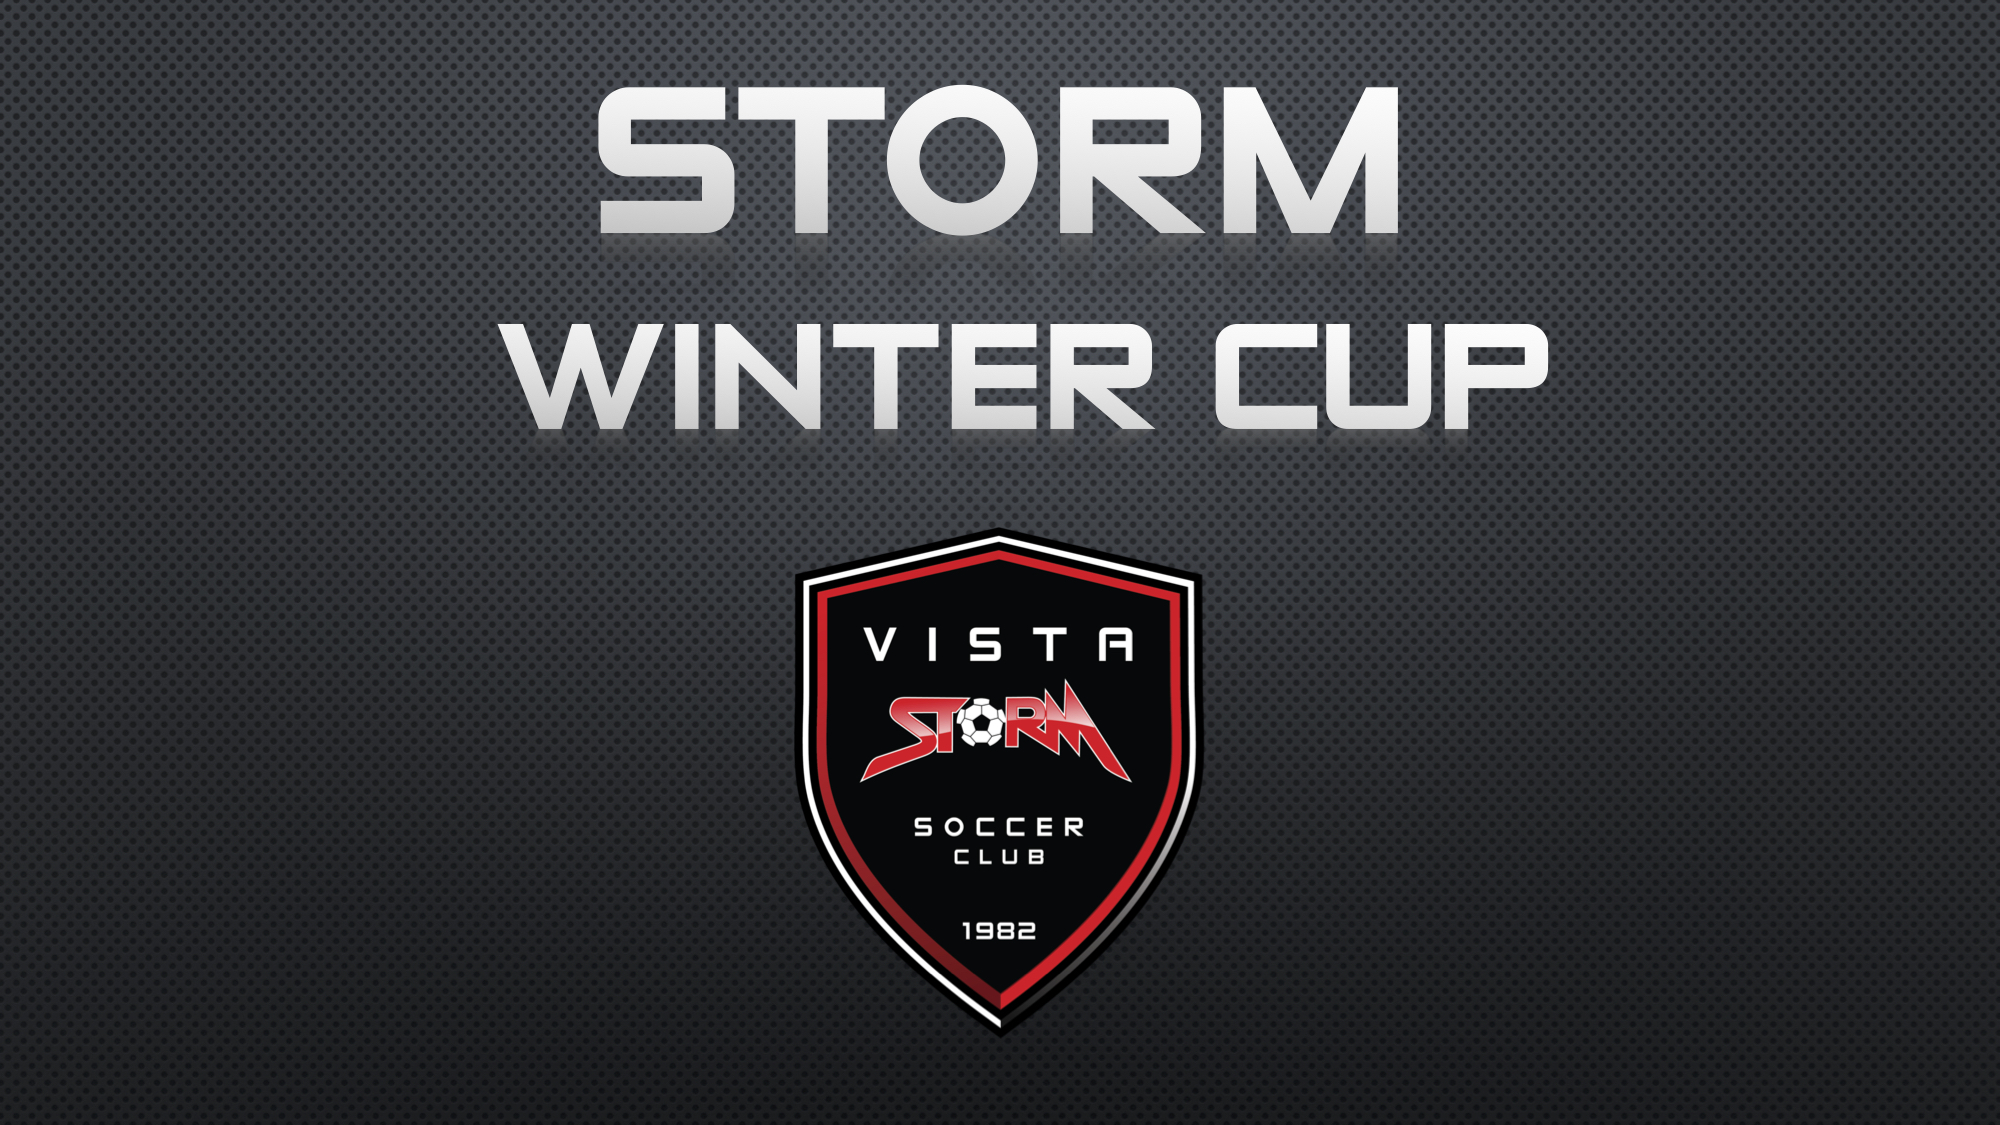 VISTA STORM WINTER CUP